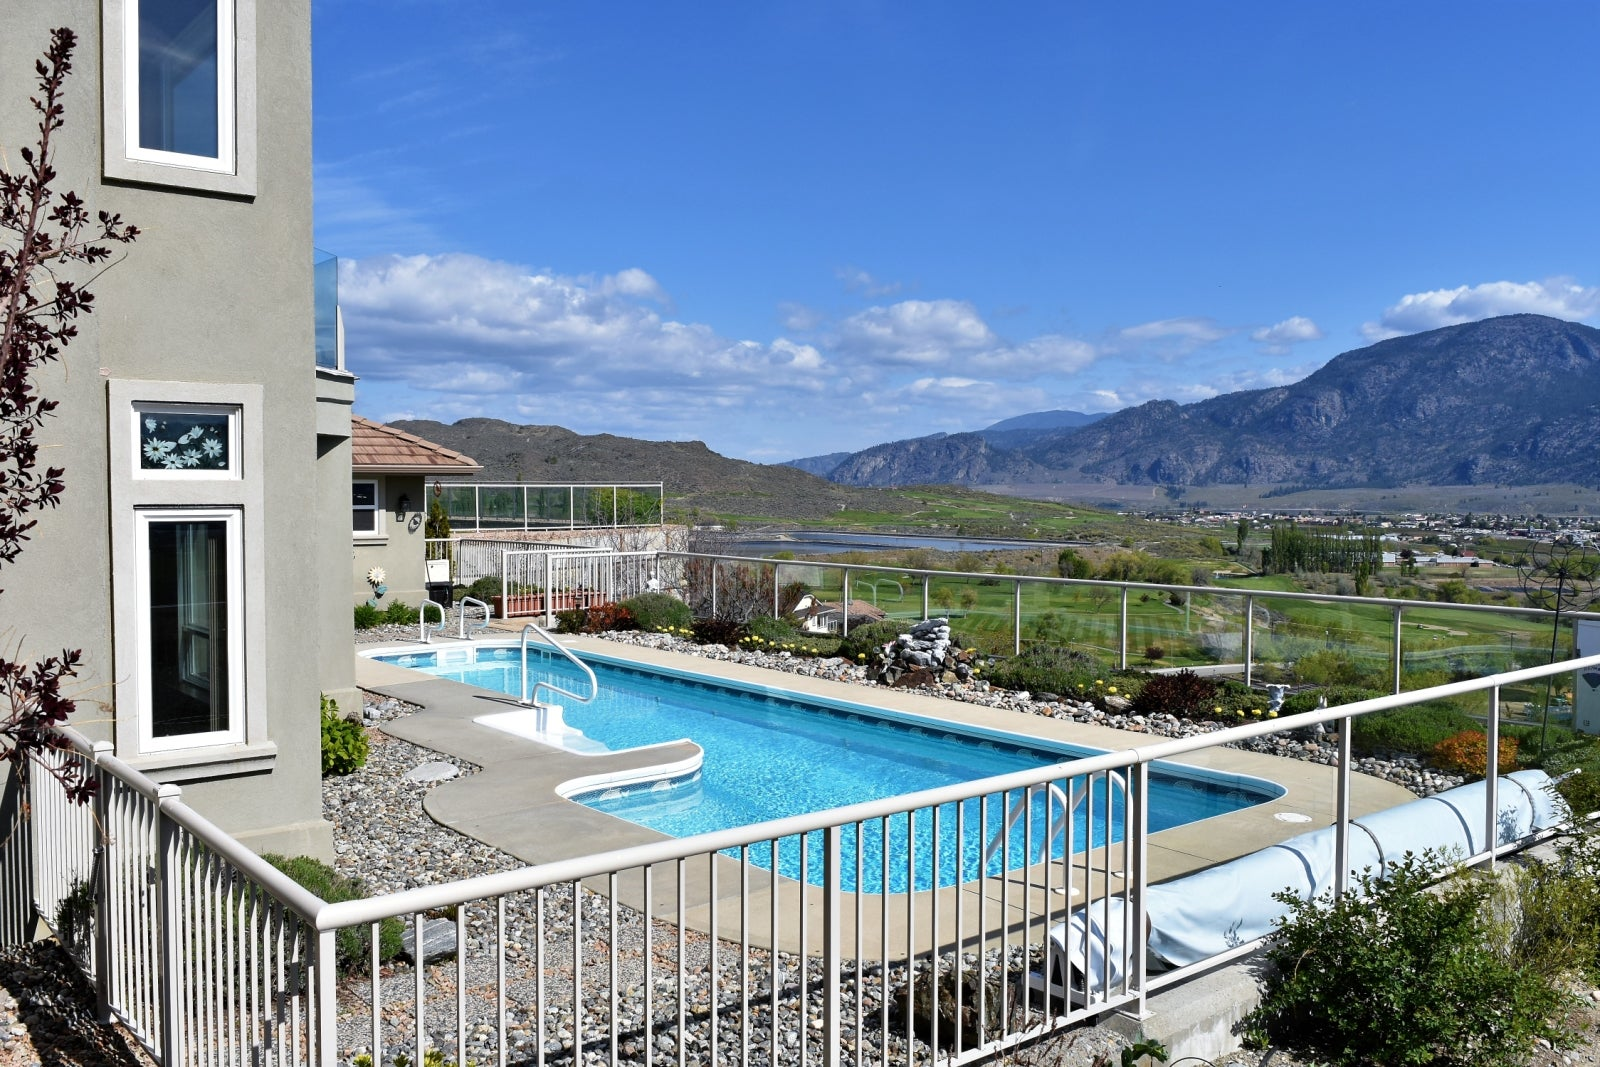 11715 Olympic View Drive - Osoyoos Single Family for sale, 4 Bedrooms (176846) #7